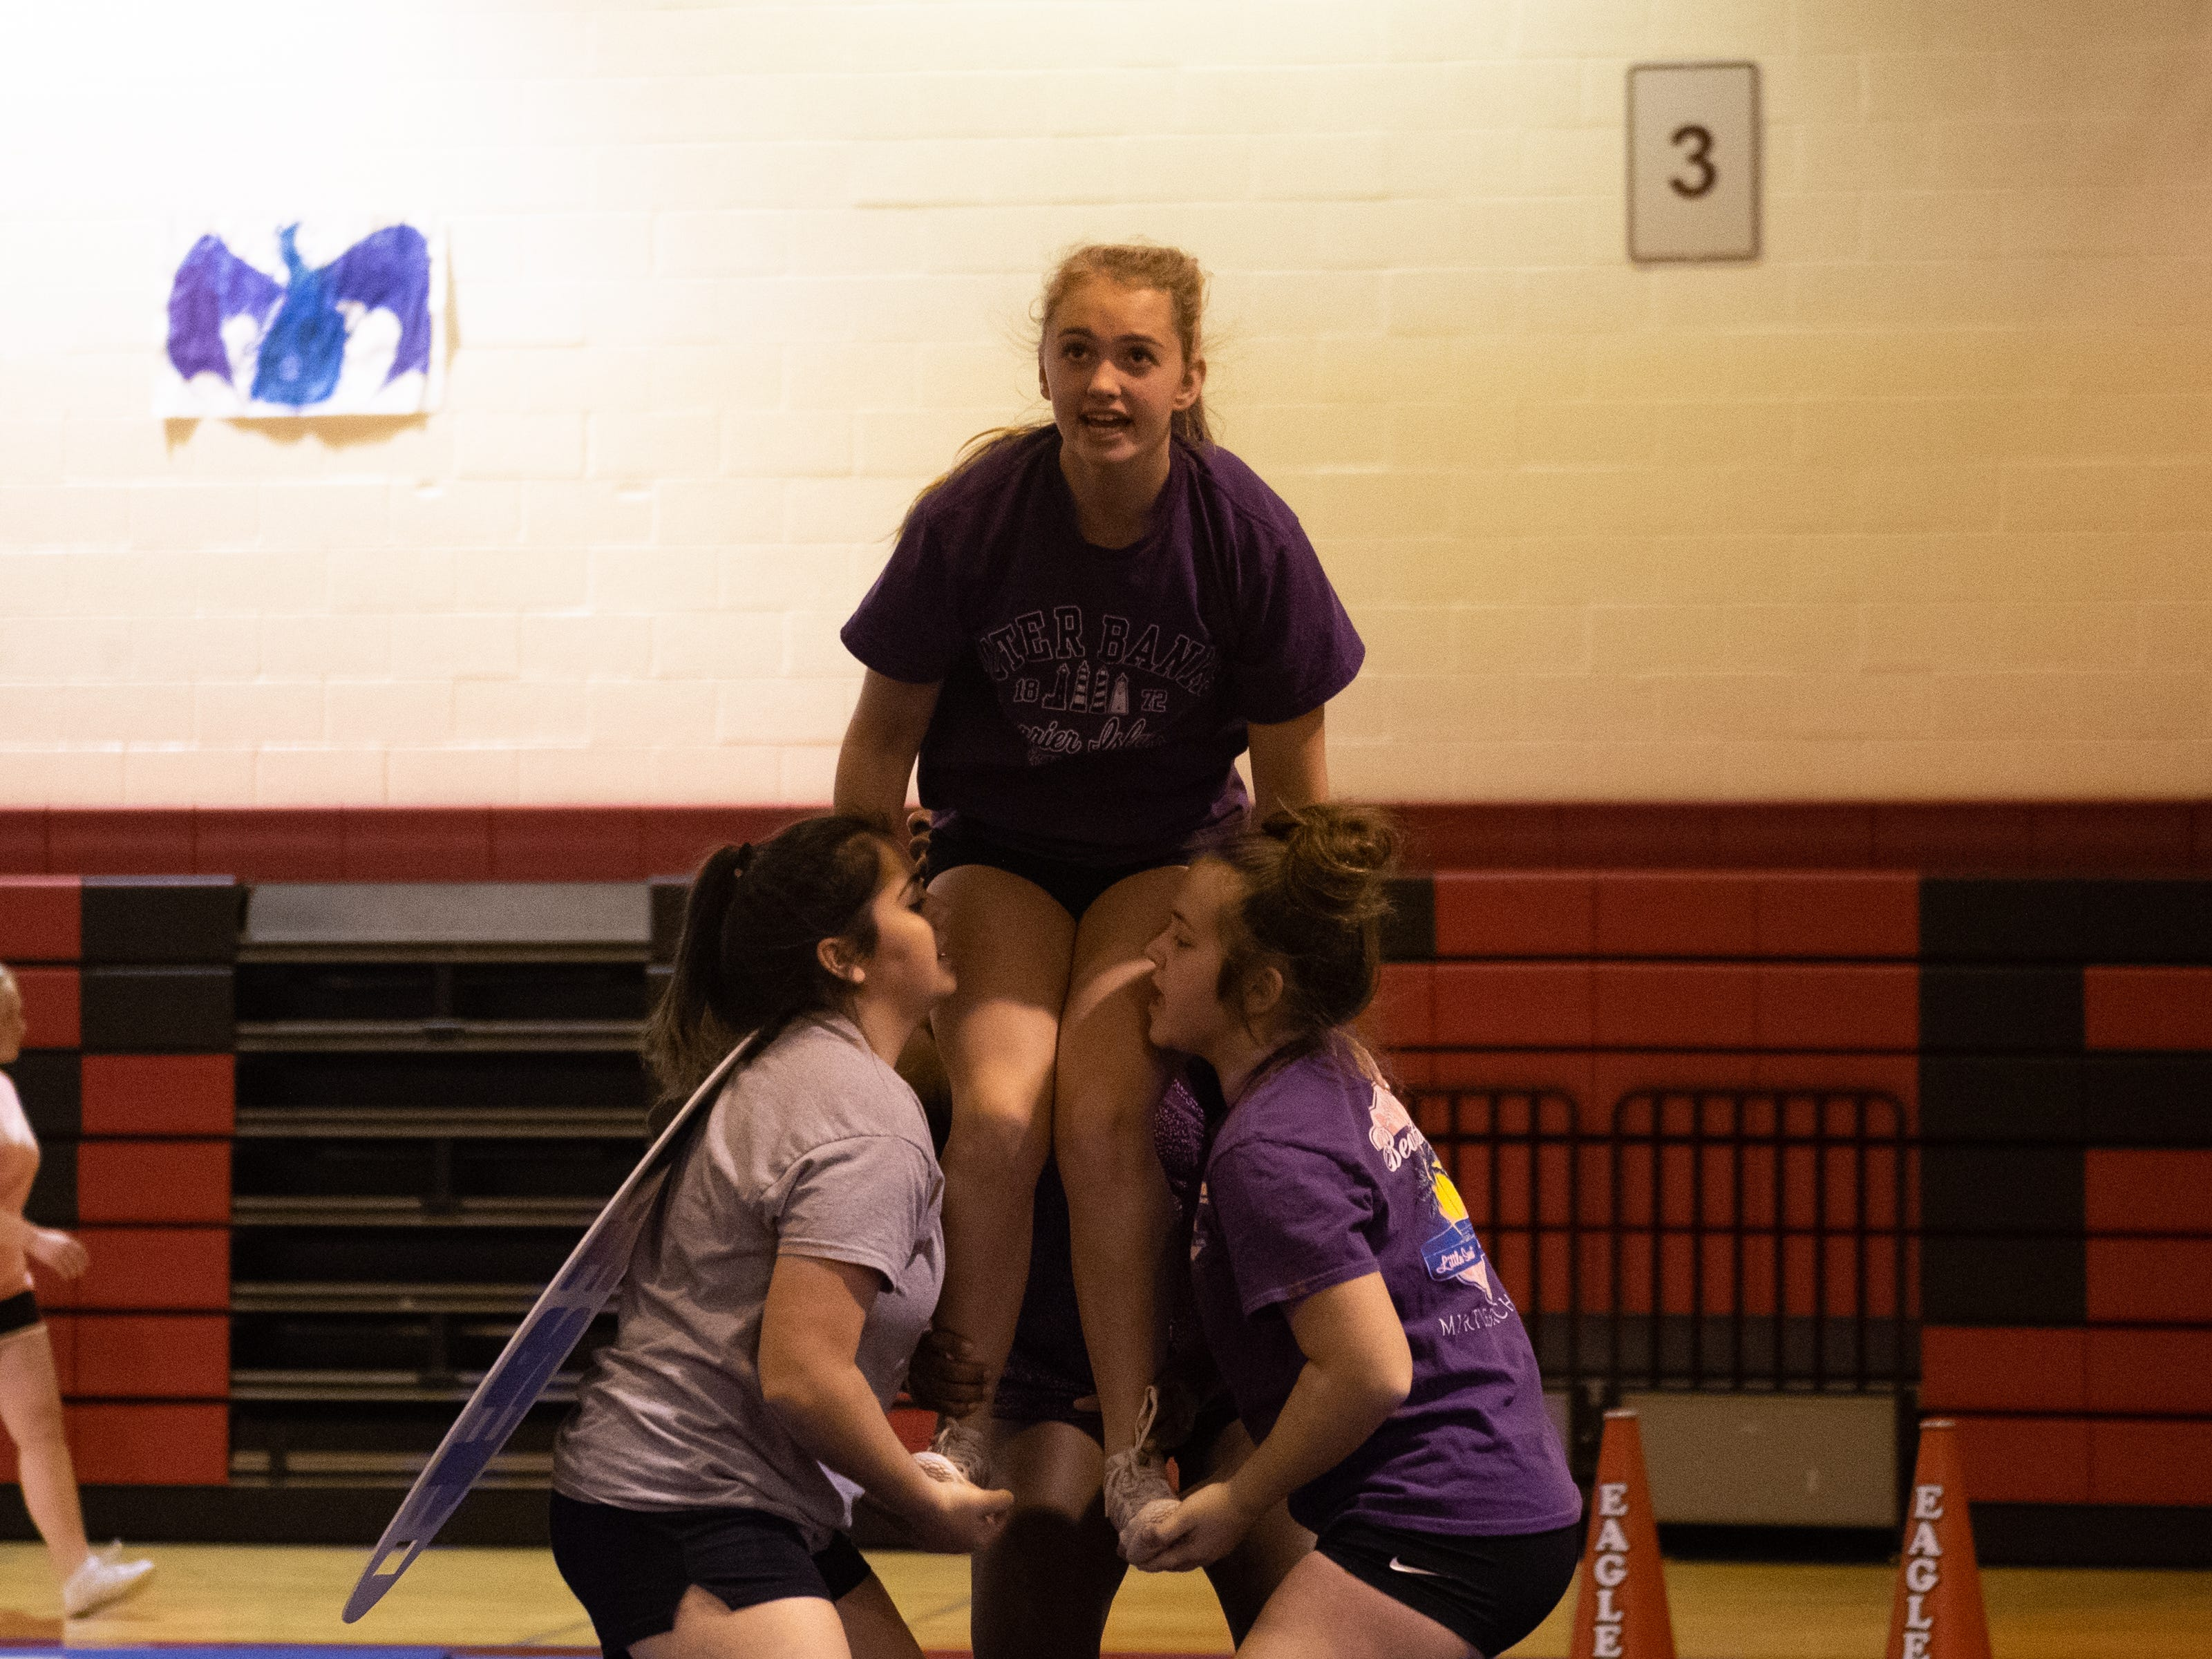 Londyn Sayers communicates with her team during Dover's competitive spirit practice, November 14, 2018.